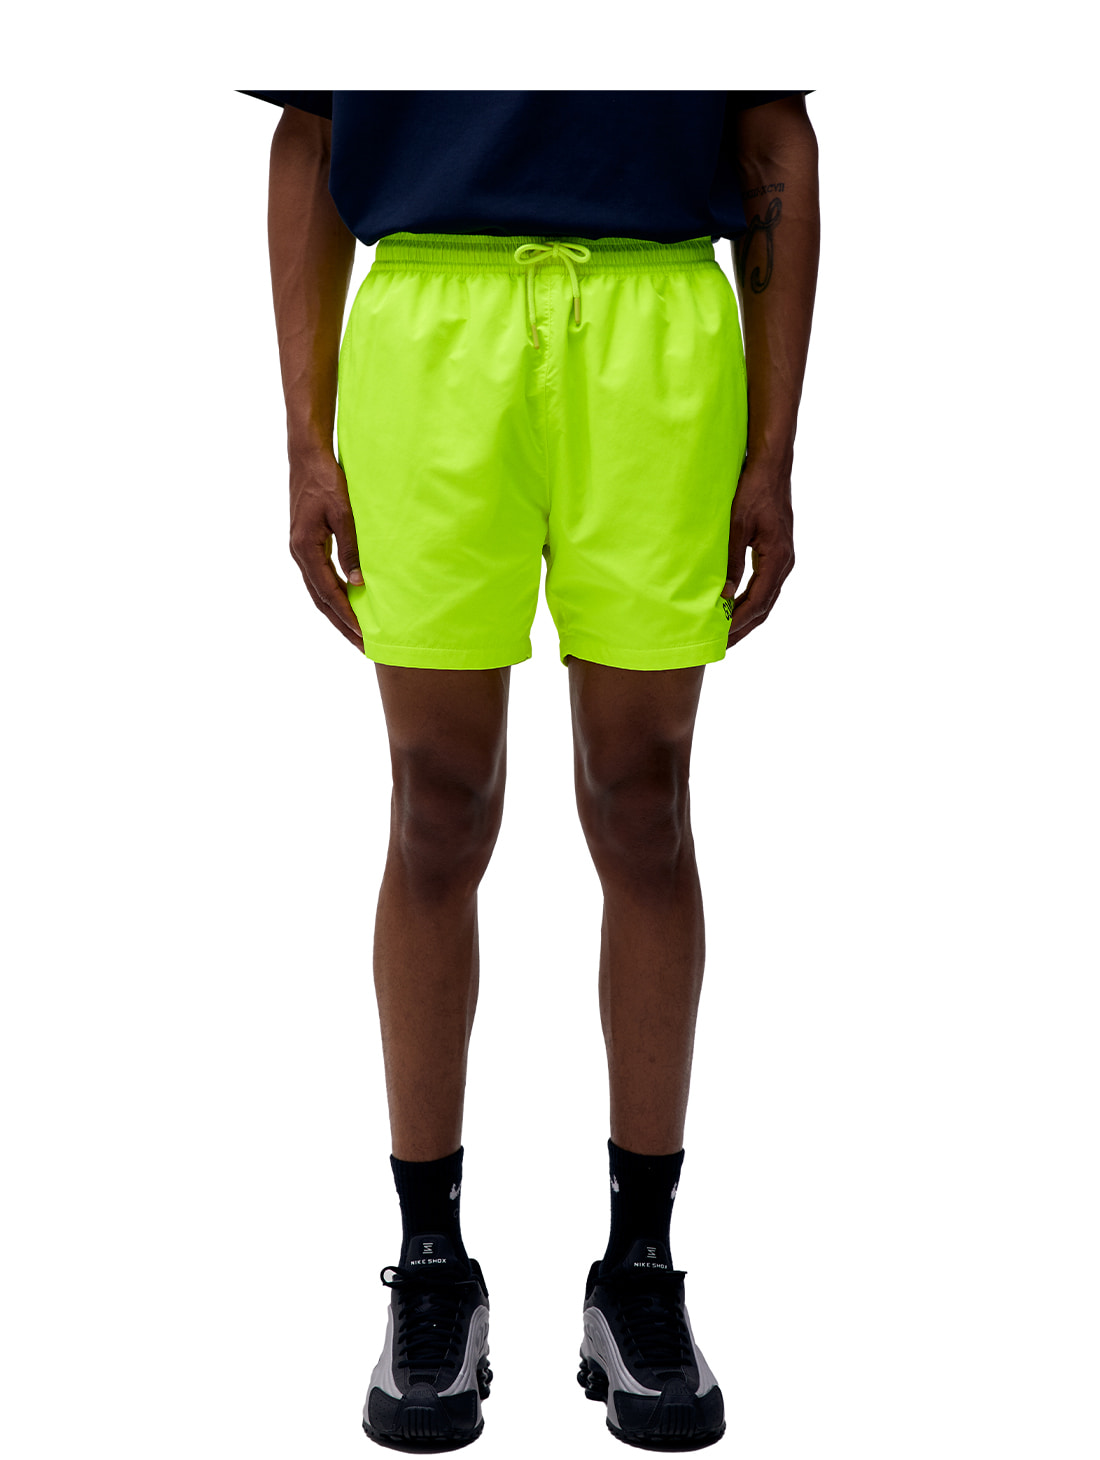 (Sold Out) SOLID WOVEN SHORTS - LIME YELLOW